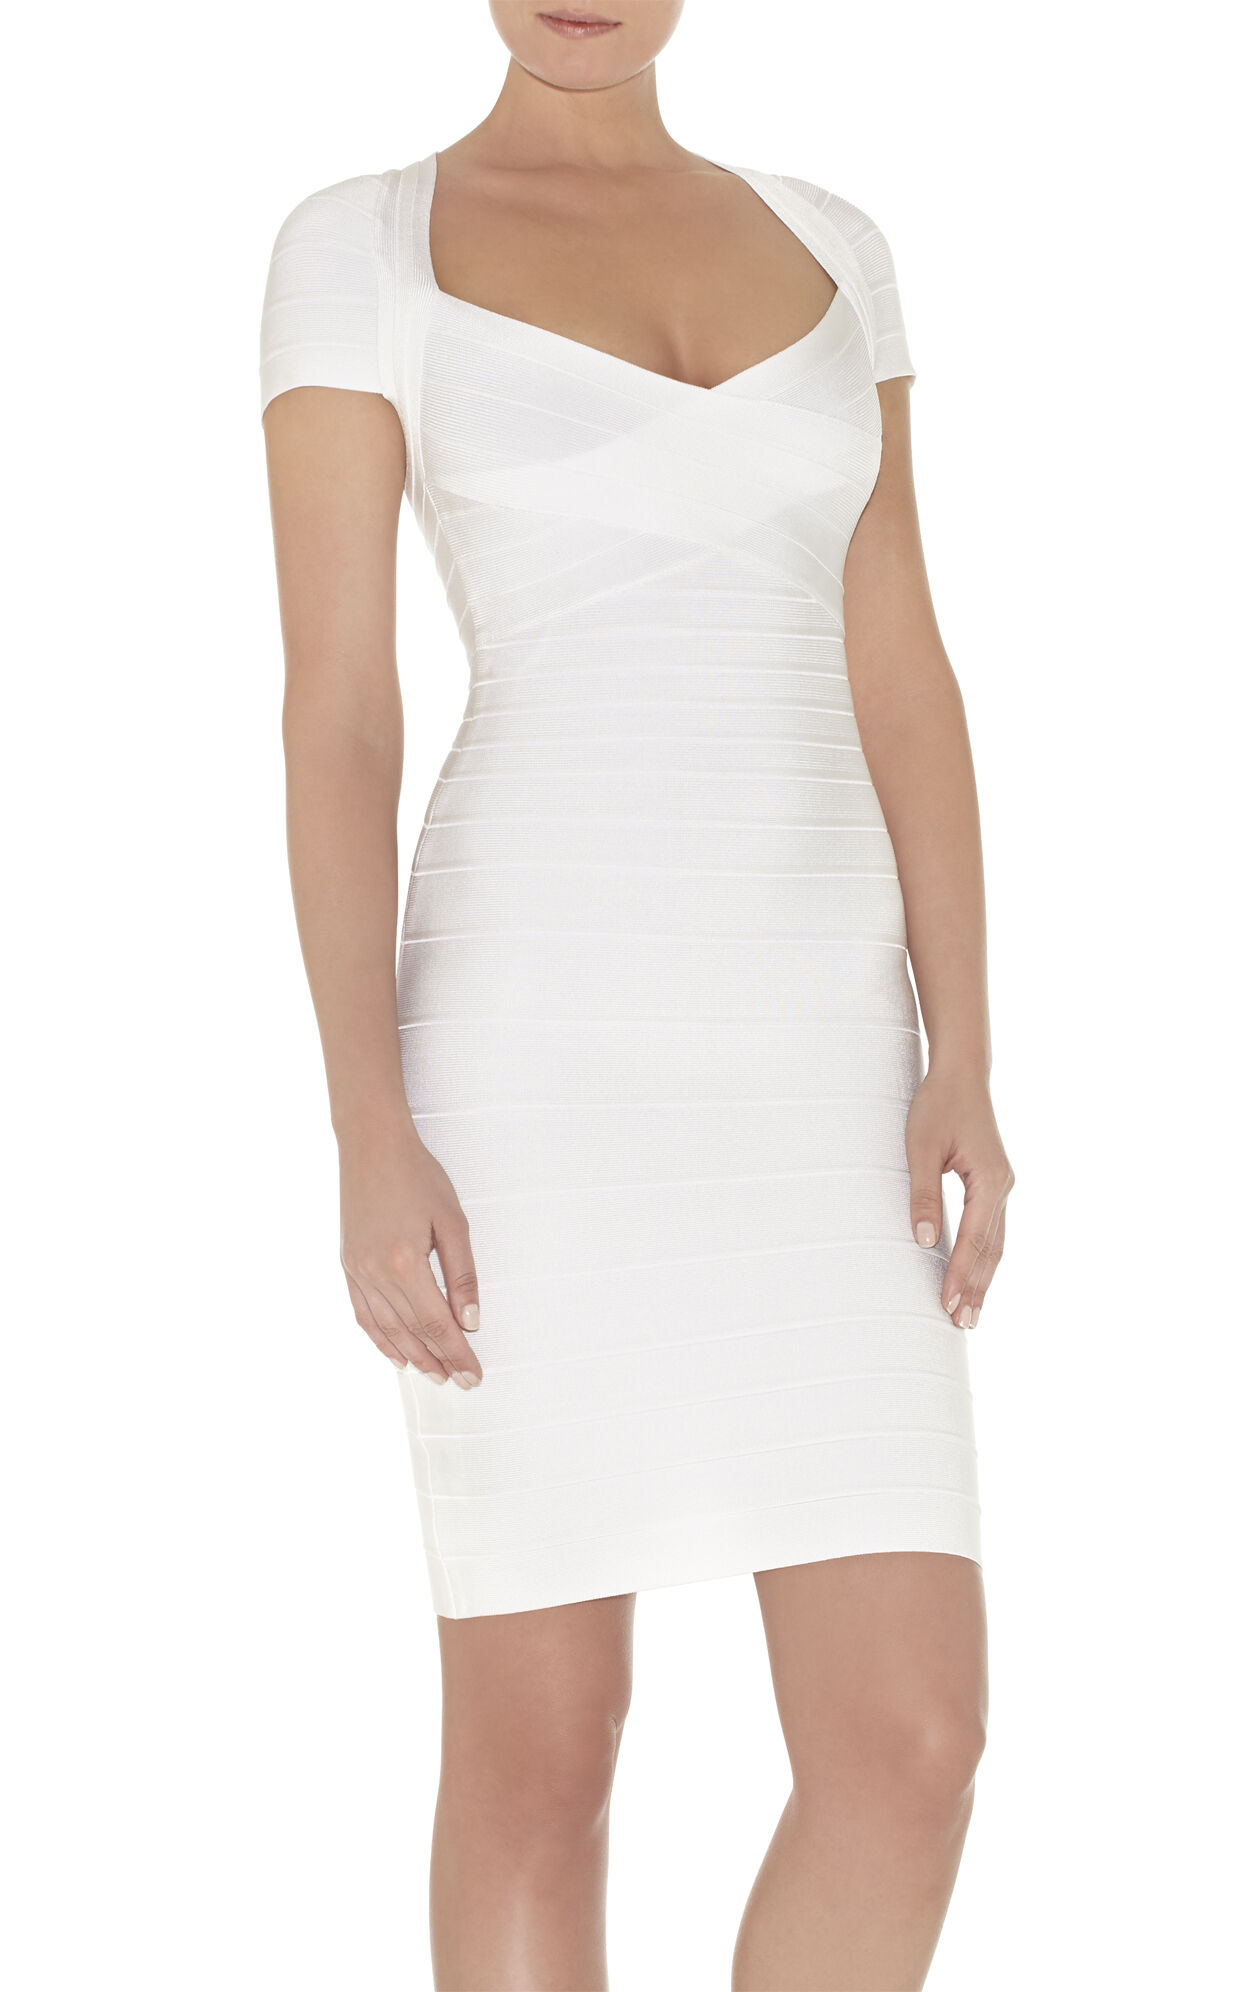 Raquel Signature Bandage Dress